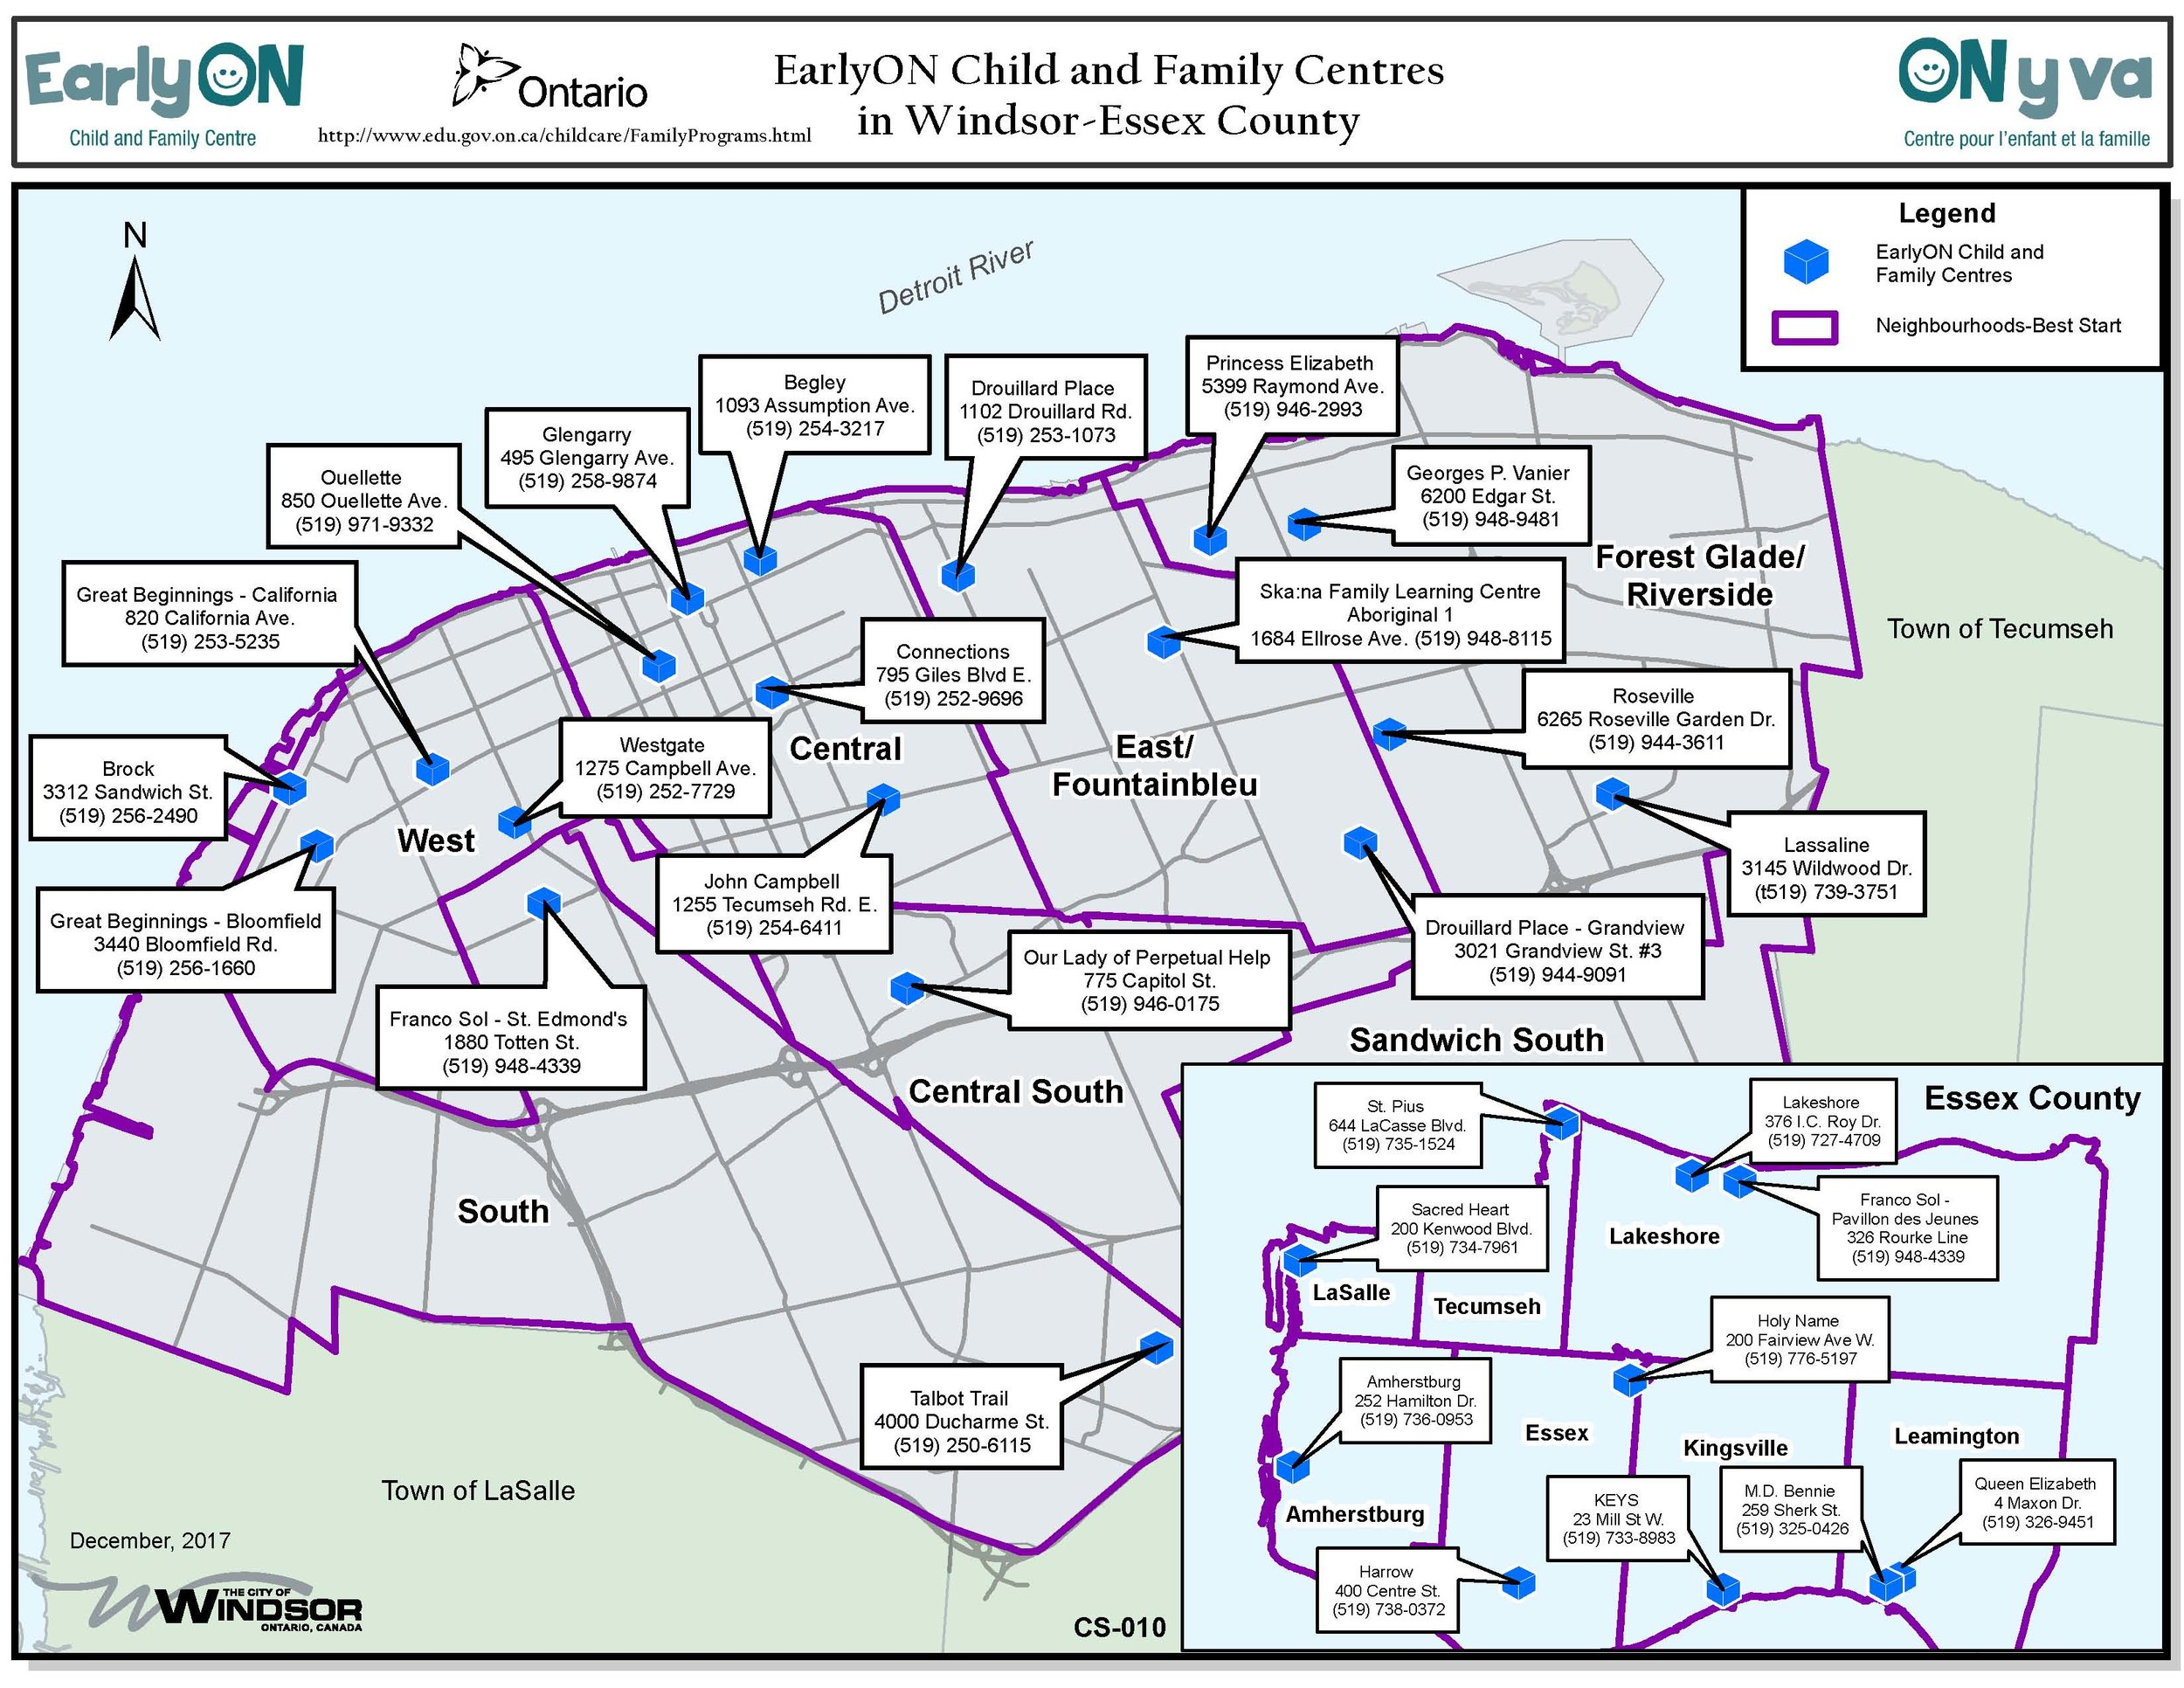 Map of Early On Children and Family Centres in Windsor and Essex County.jpg